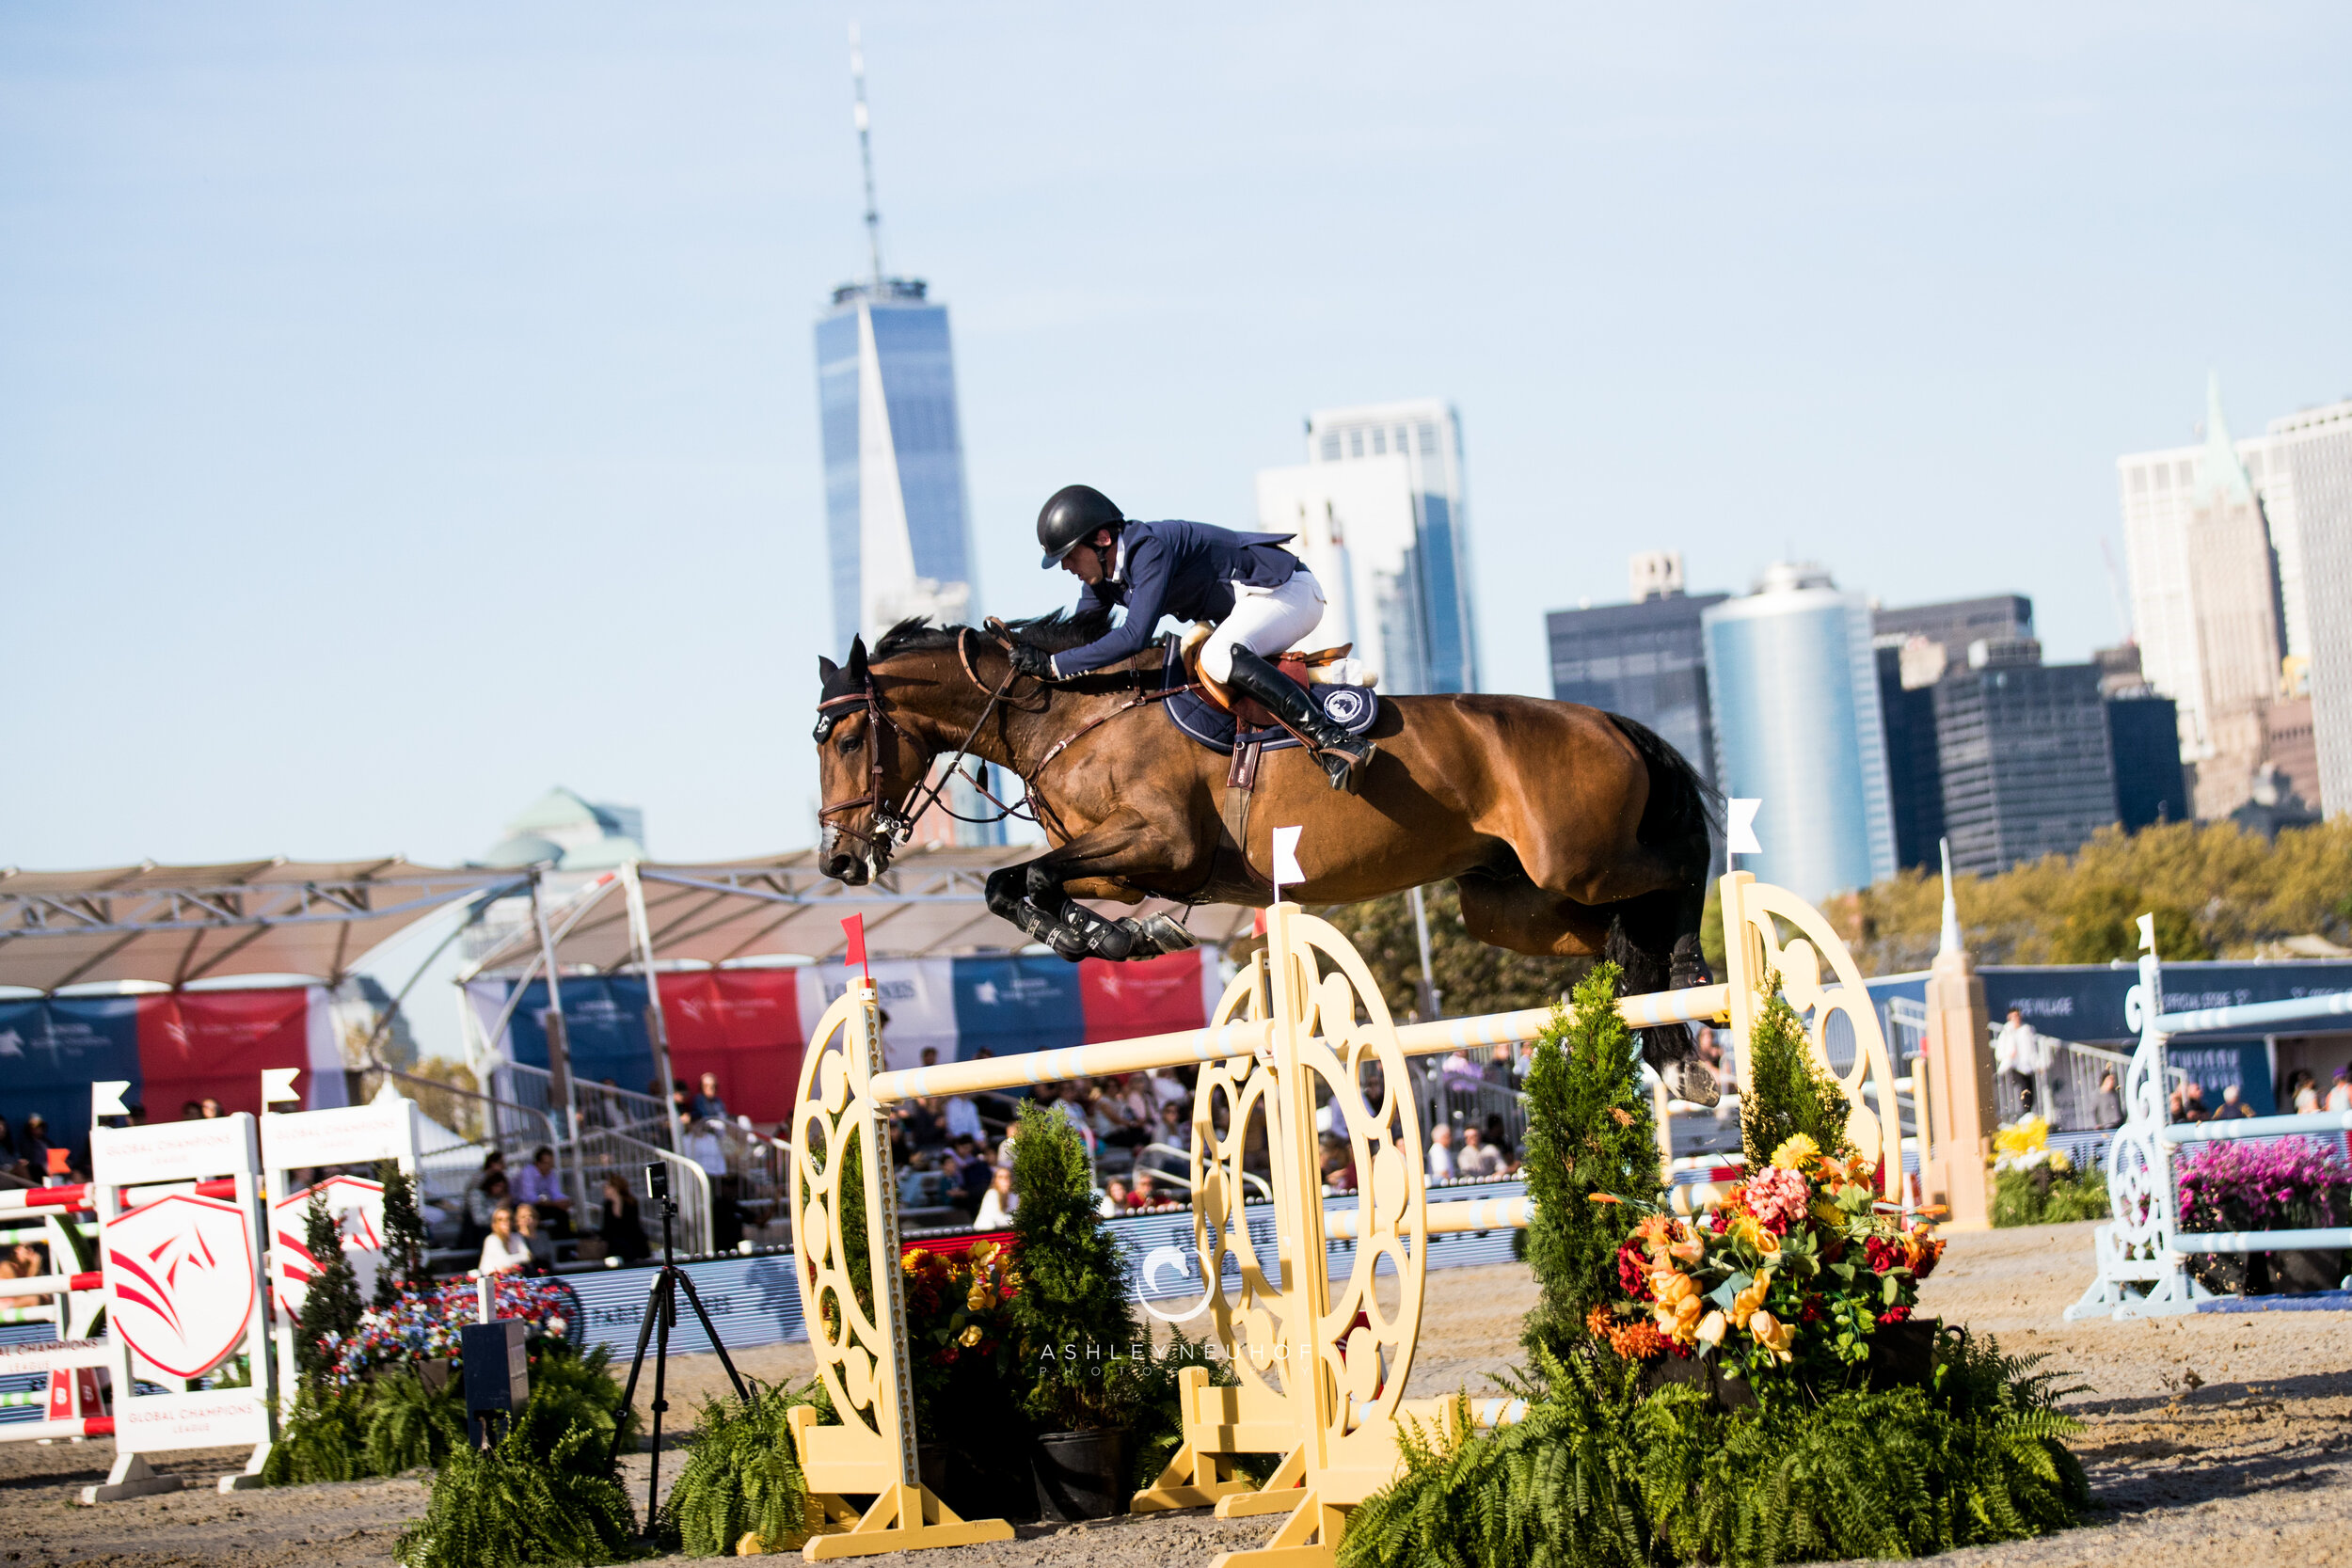 Harrie Smolders and Cas 2 at Global Champions League of New York 2019. Photo by Ashley Neuhof Photography.